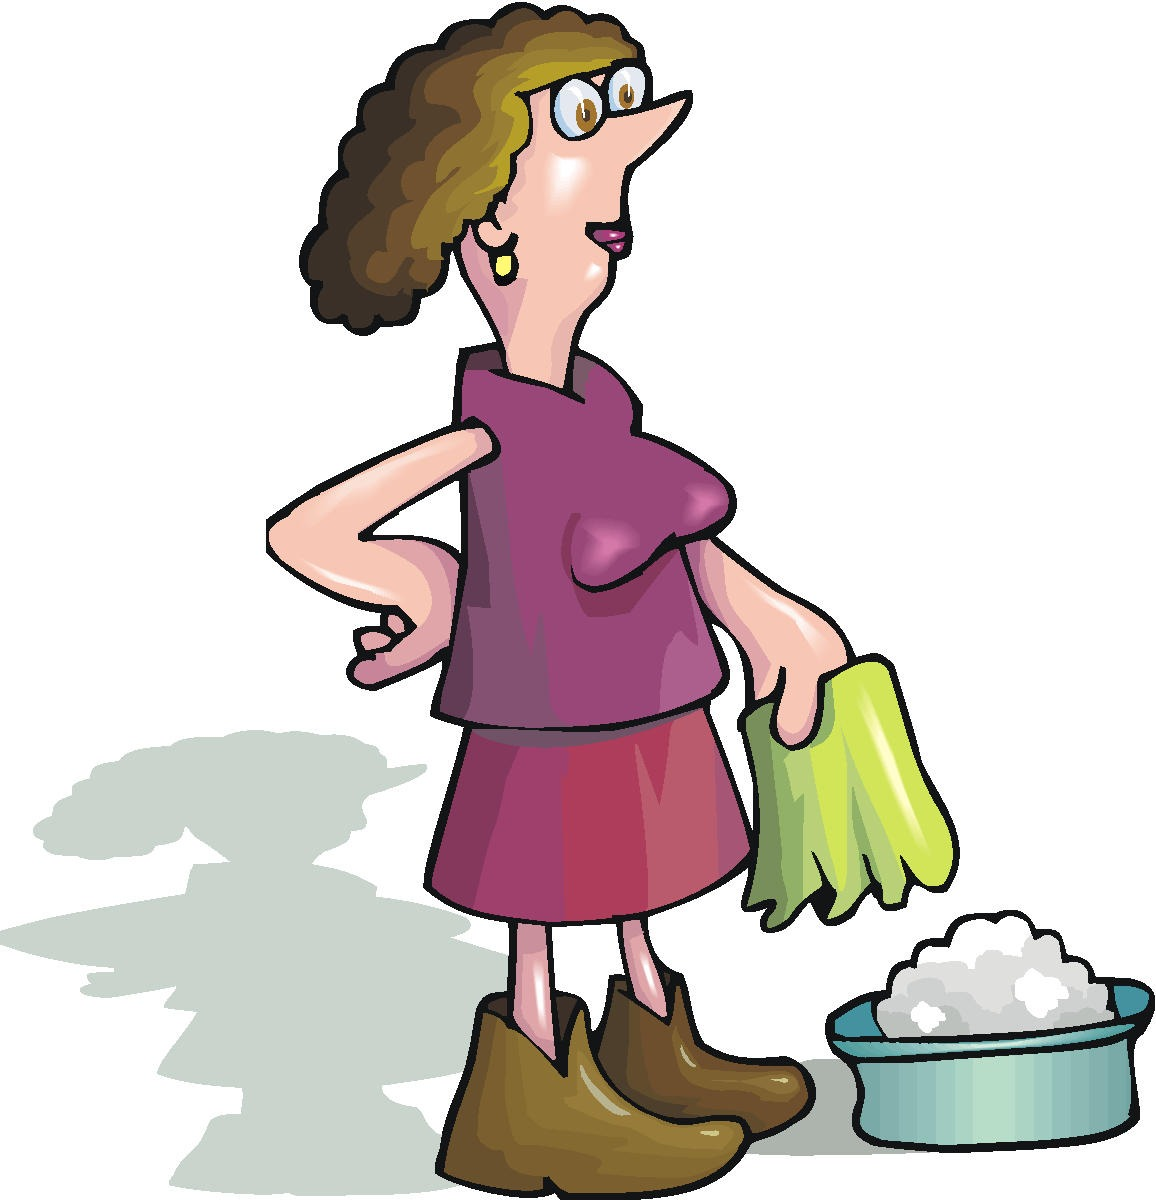 Carol Burnett as Cleaning Lady http://www.joyful-expressions.blogspot.com/2012_05_01_archive.html